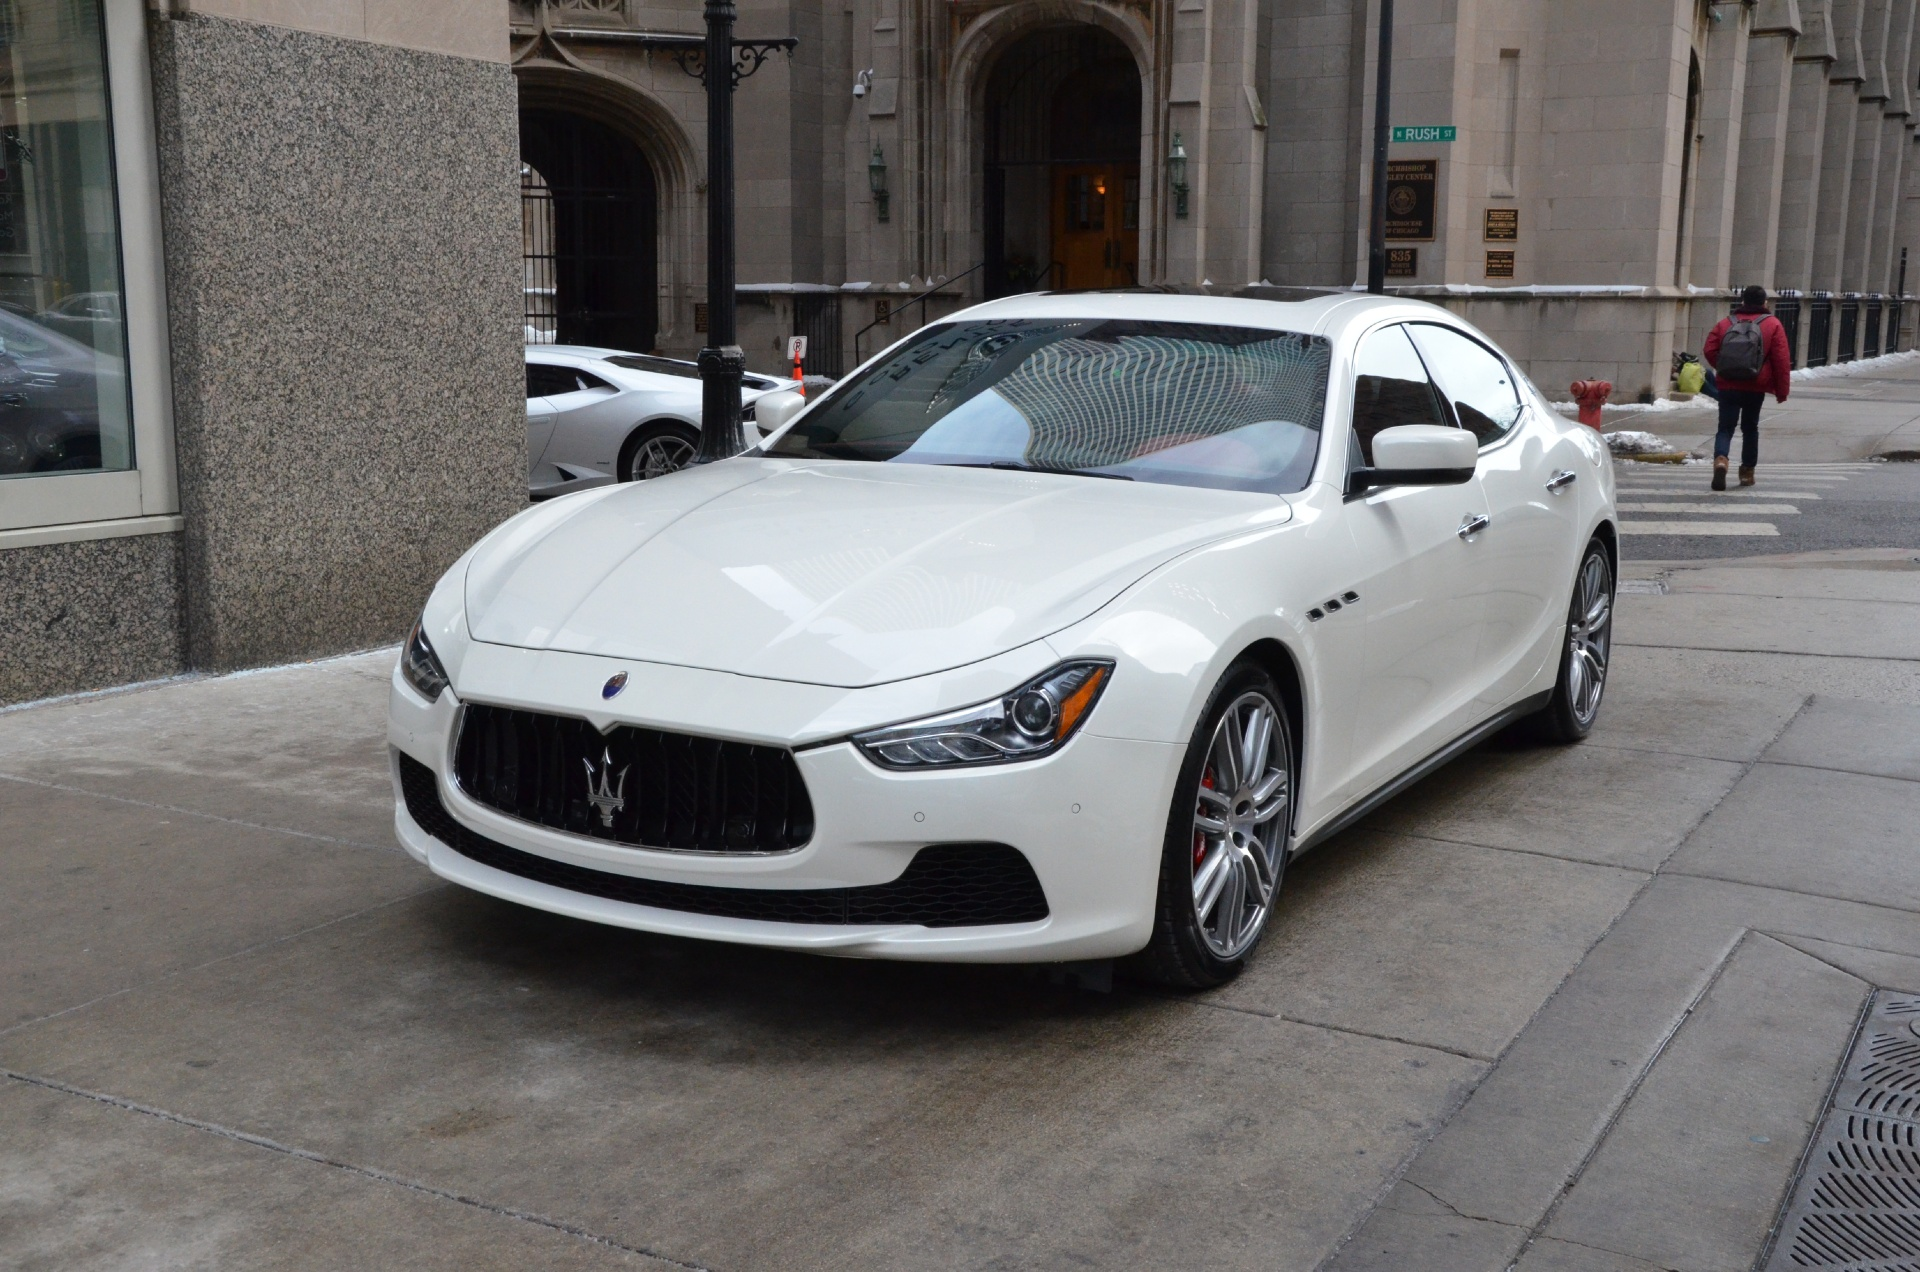 2015 maserati ghibli sq4 s q4 stock m410 s for sale near. Black Bedroom Furniture Sets. Home Design Ideas